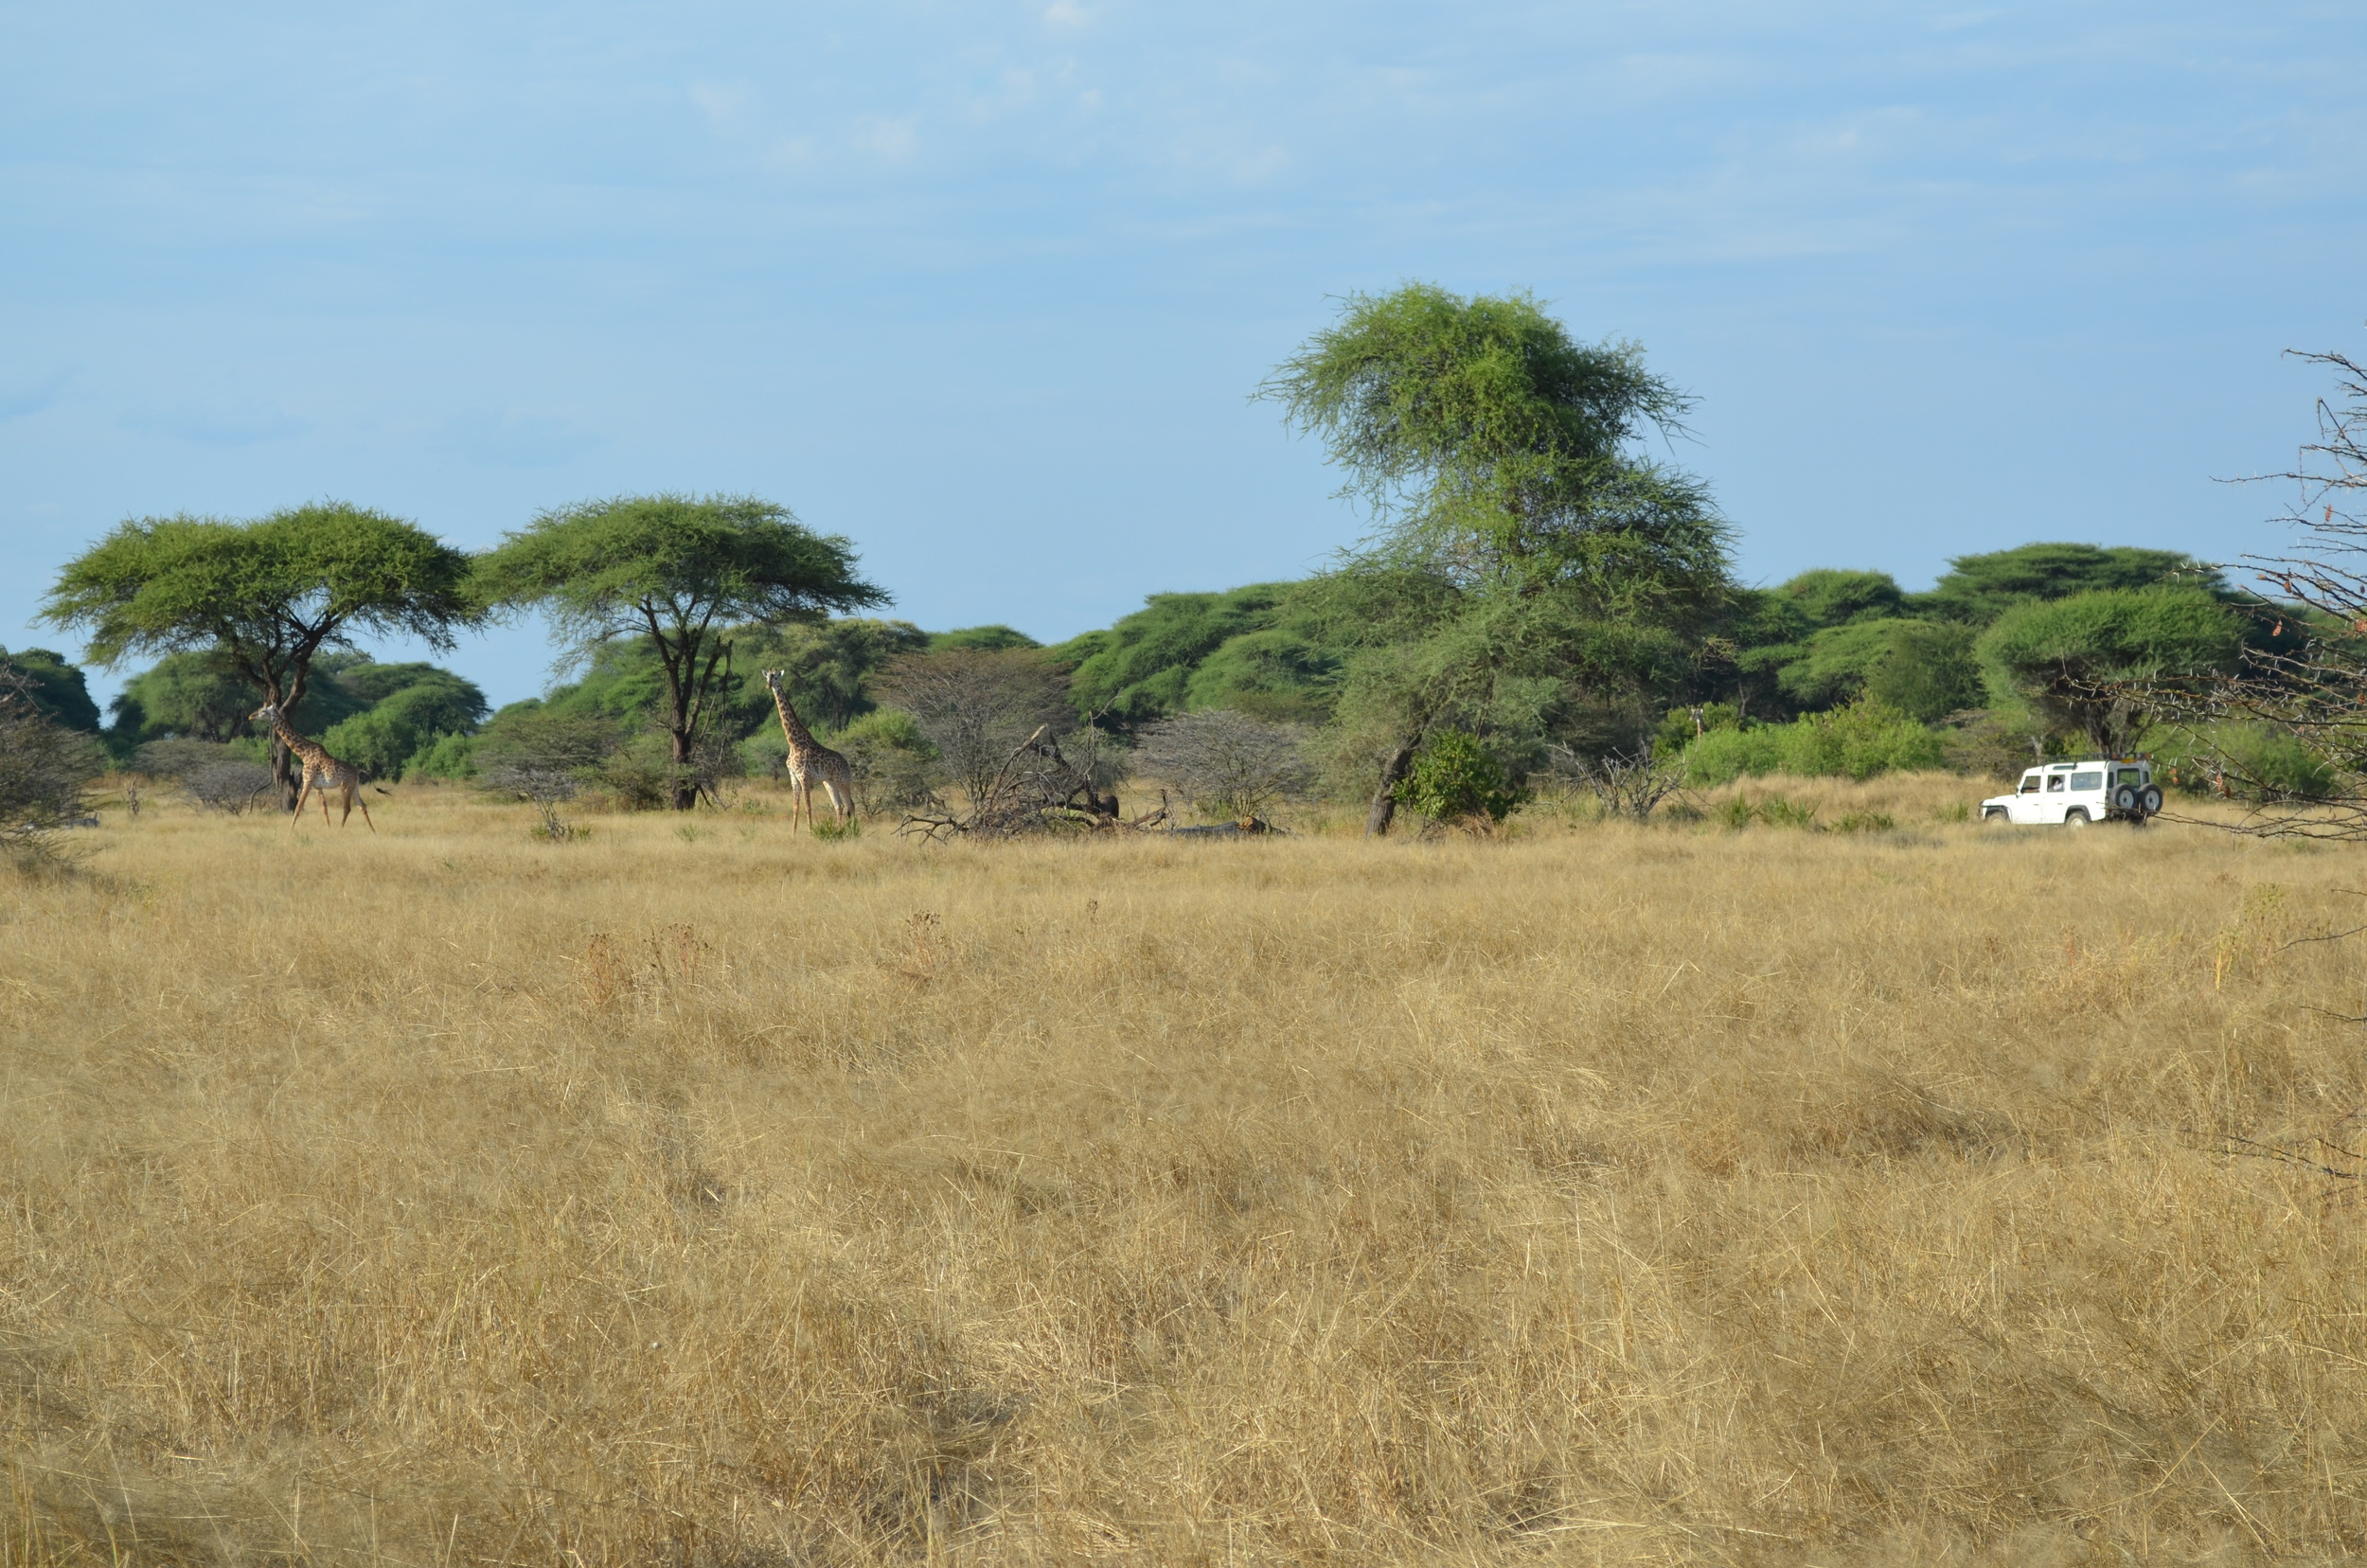 With a dart gun loaded, veterinarians in the white vehicle carefully approach the target giraffe. Although the landscape looks ideal, hidden challenges like bushes, ravines, and even snakes make giraffe captures a strenuous undertaking.